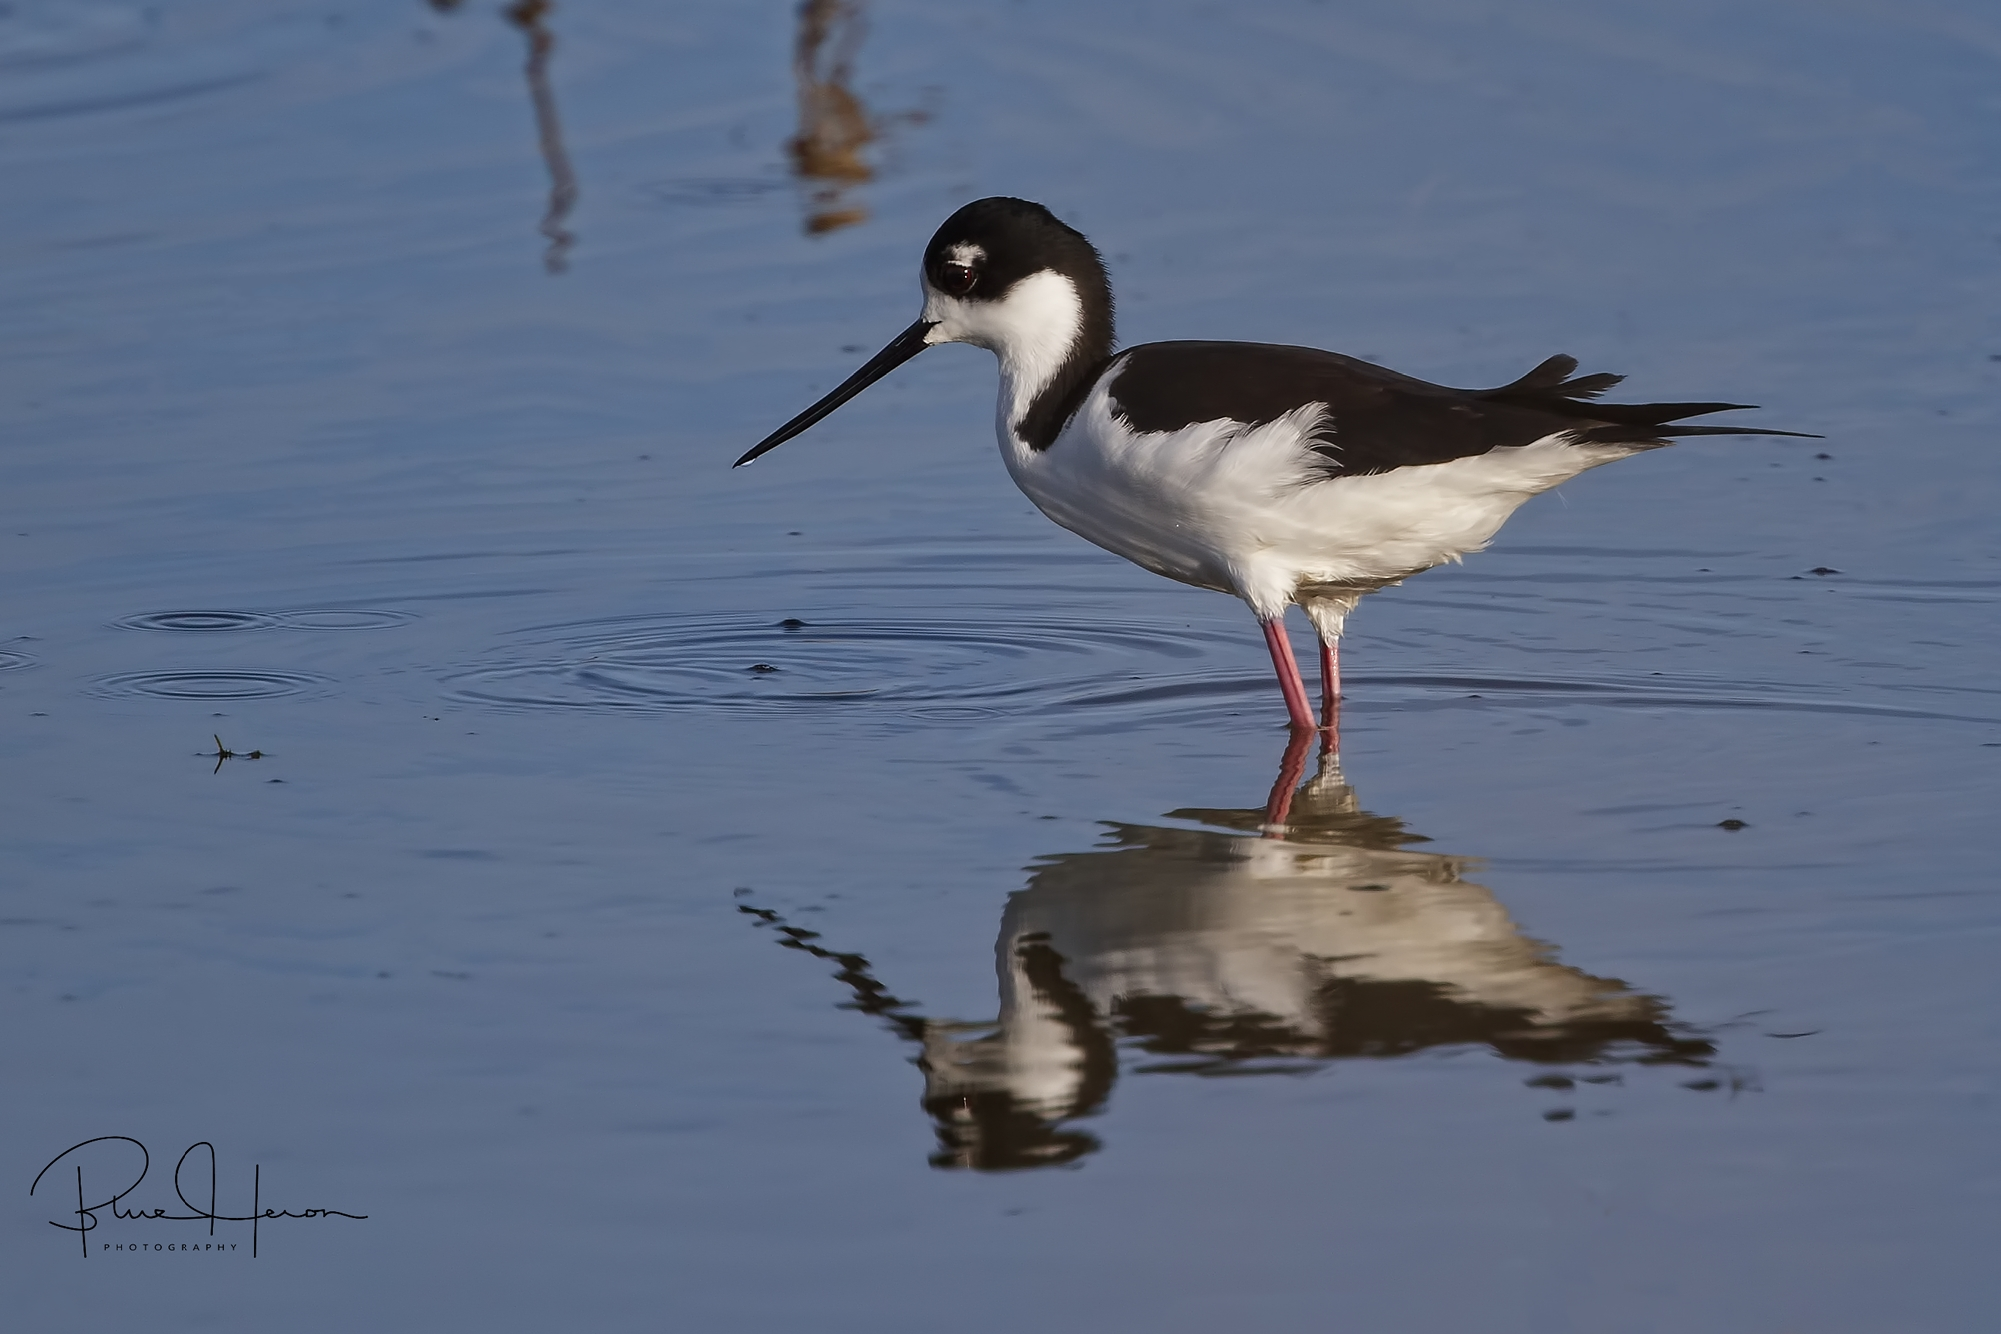 A first for me, I capture this Black Necked Stilt at the wetlands..